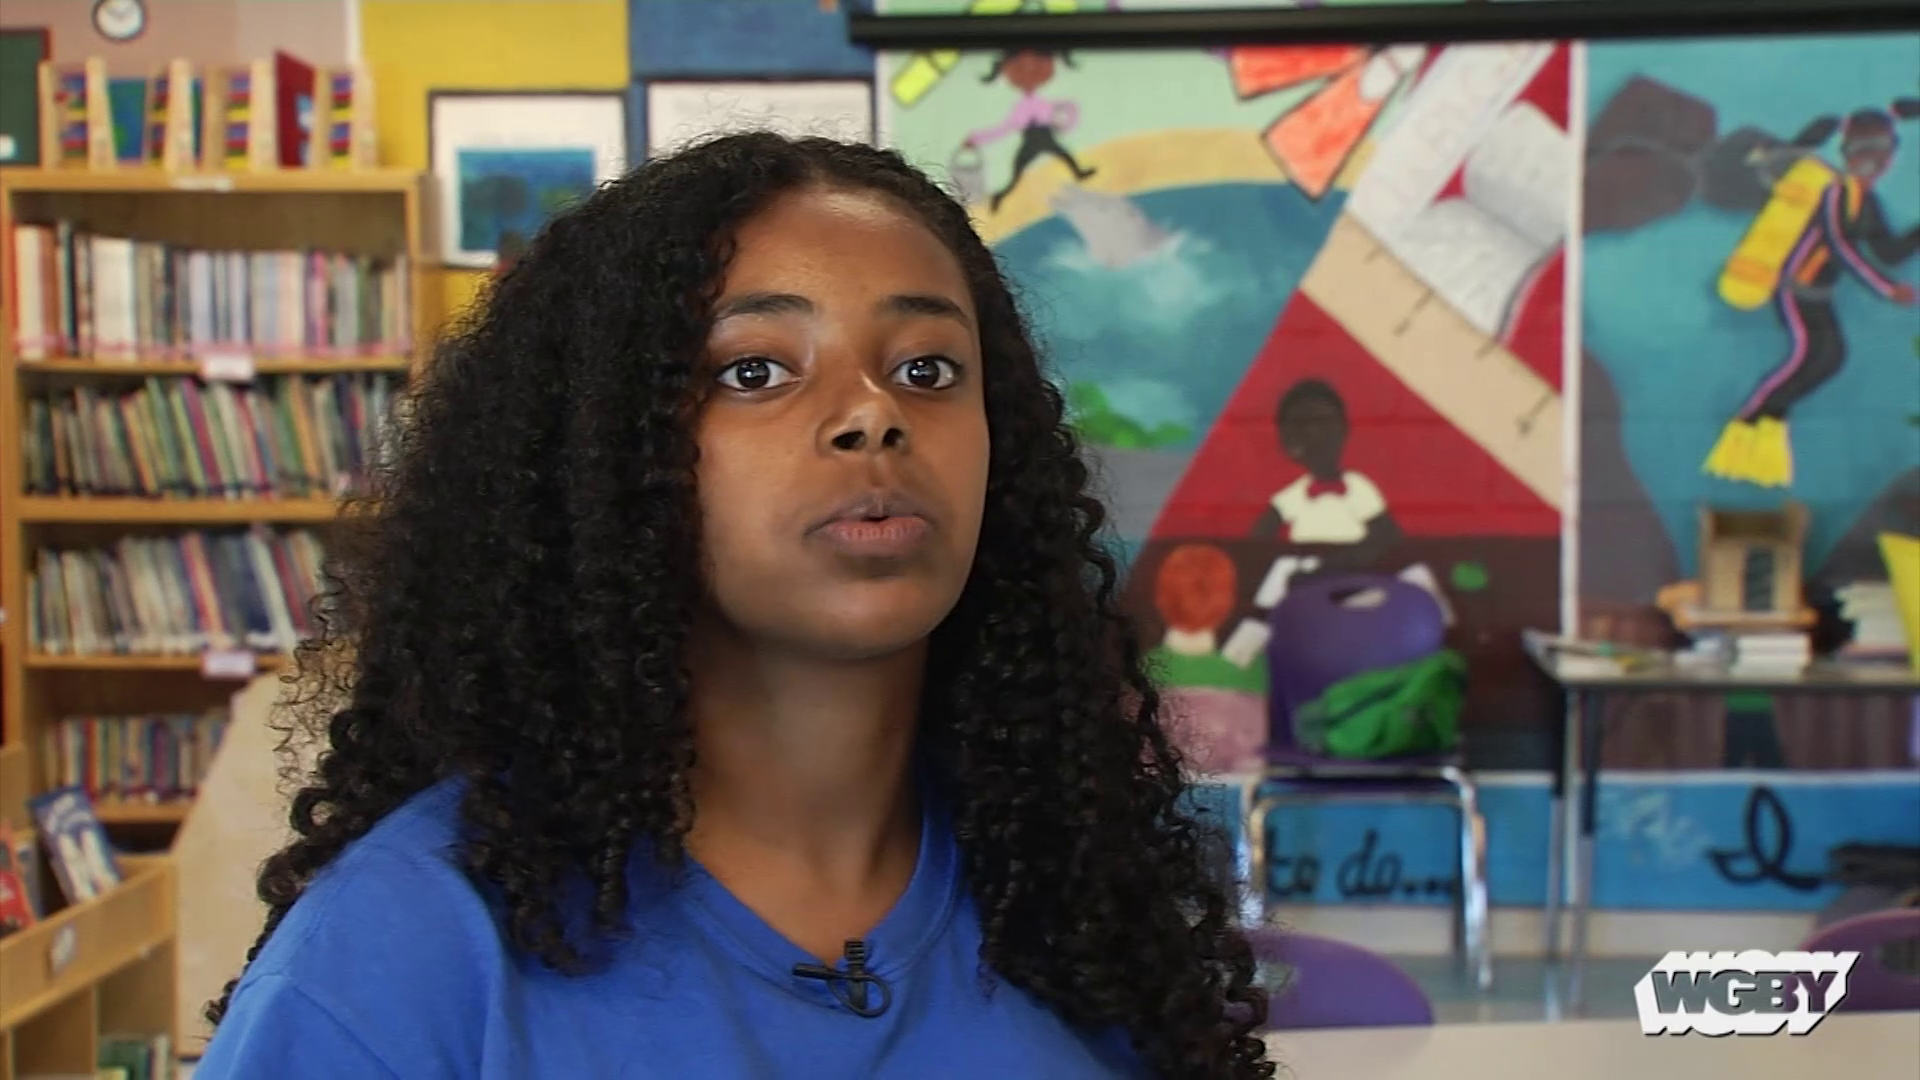 Boston Mayor Marty Walsh says the summer youth jobs program helps to reduce violence, but are the available jobs going to the kids that need them the most?